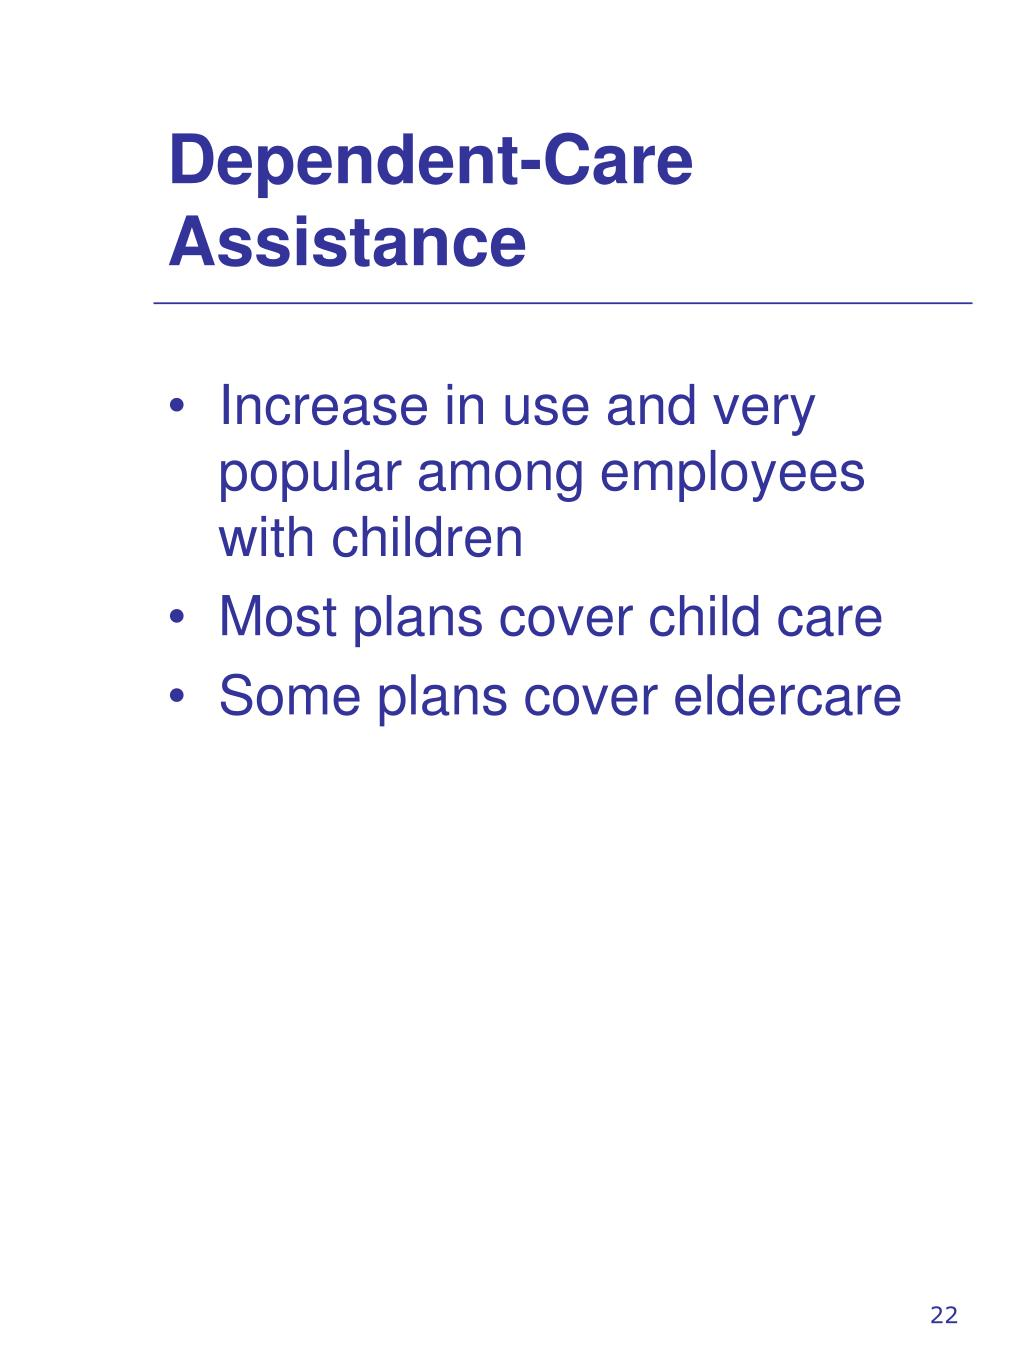 Dependent-Care Assistance